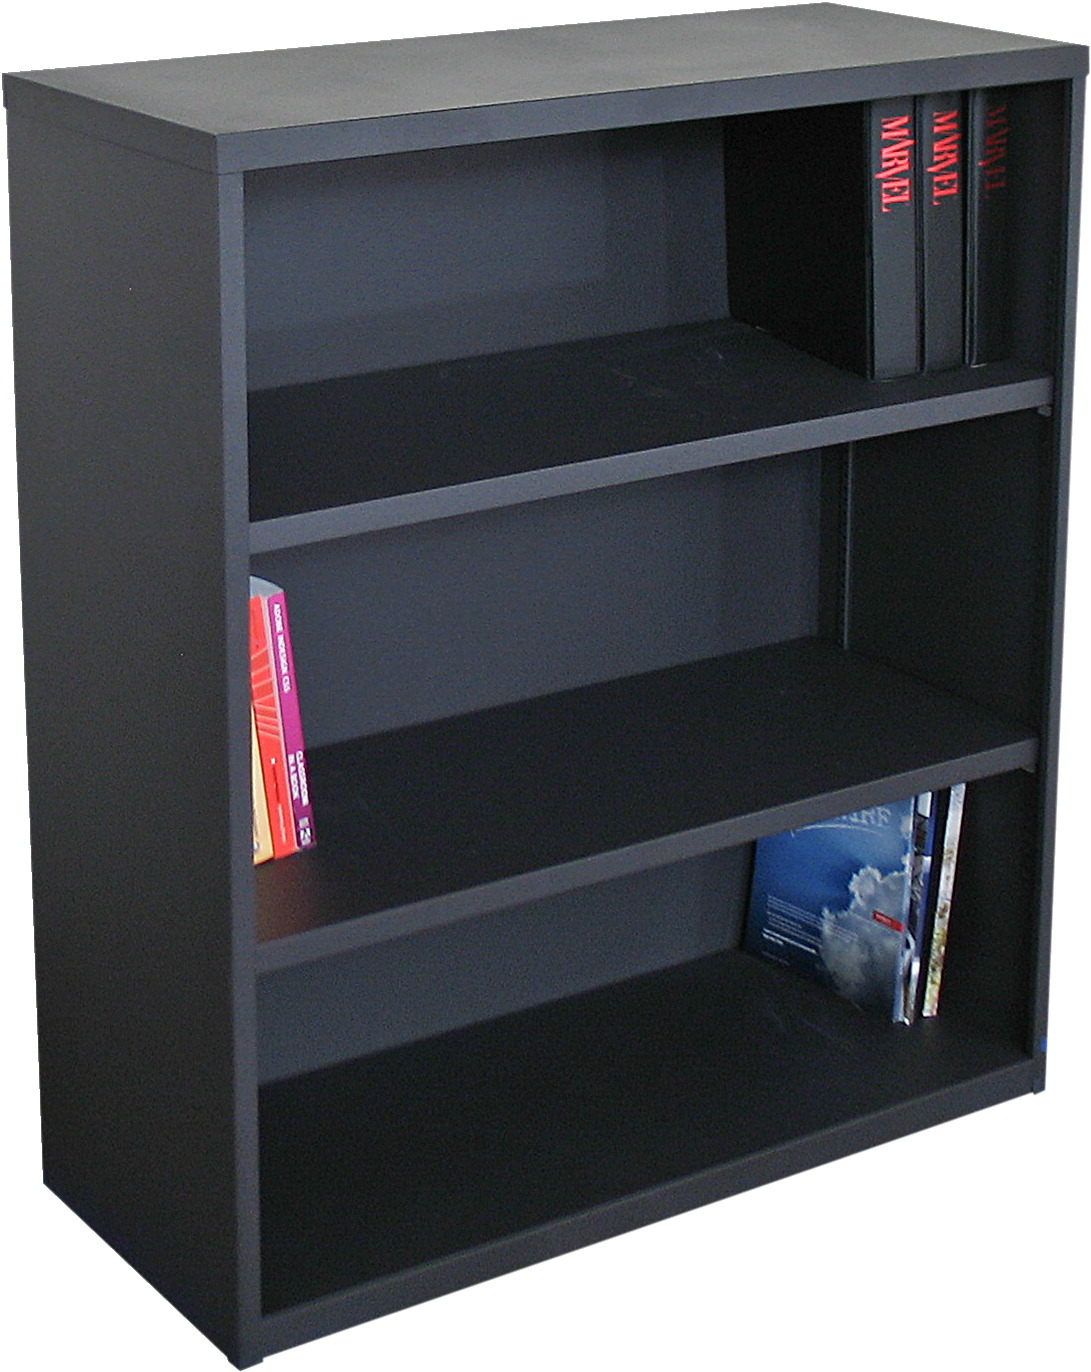 Marvel Ensemble Bookcase, 36 x 14 x 27 Inches, Dark Neutral, 3-Shelves